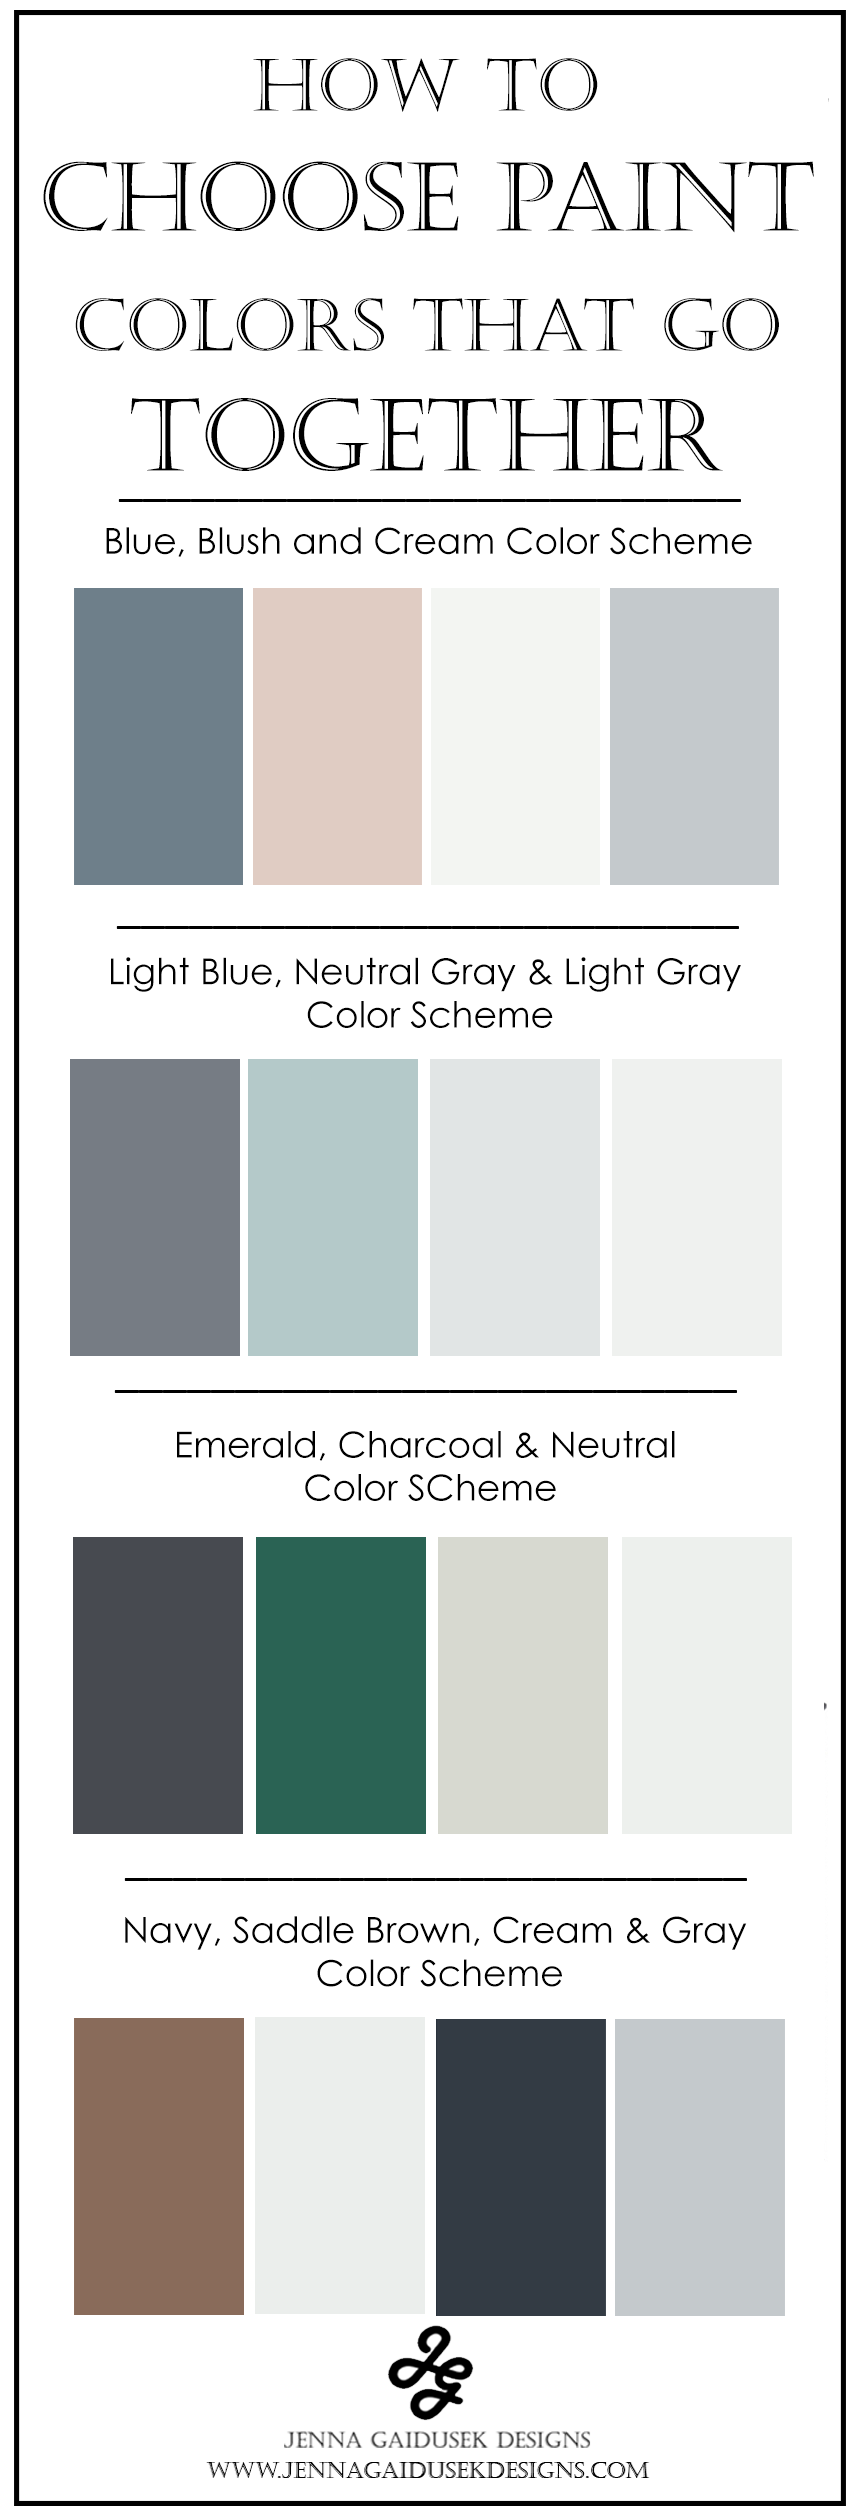 How to Choose Paint Colors That Go Together — Jenna Gaidusek Designs